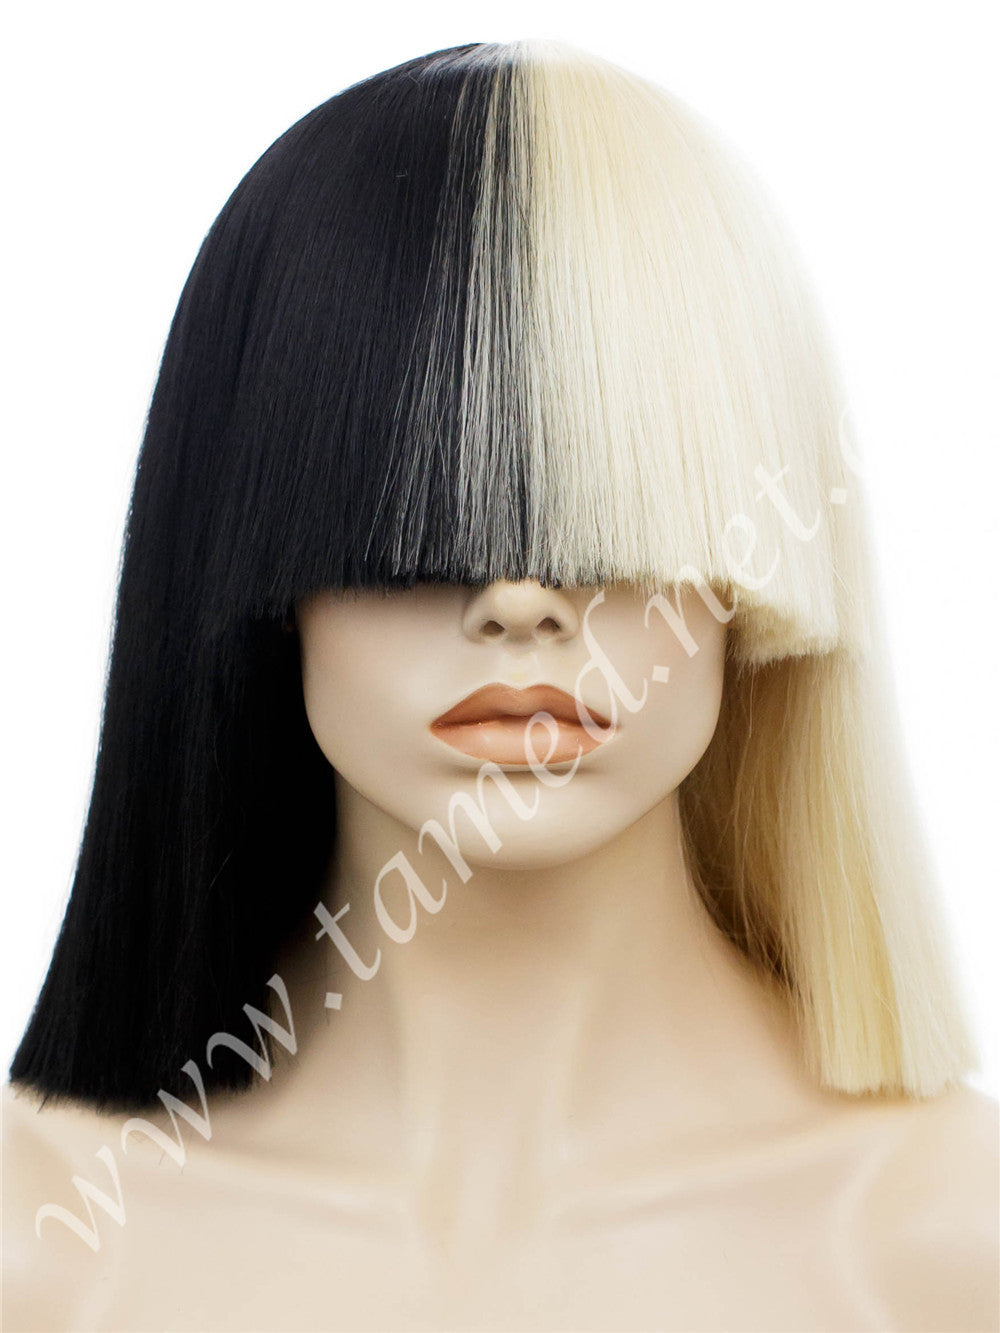 SIA - Tamed wigs and makeup - 1